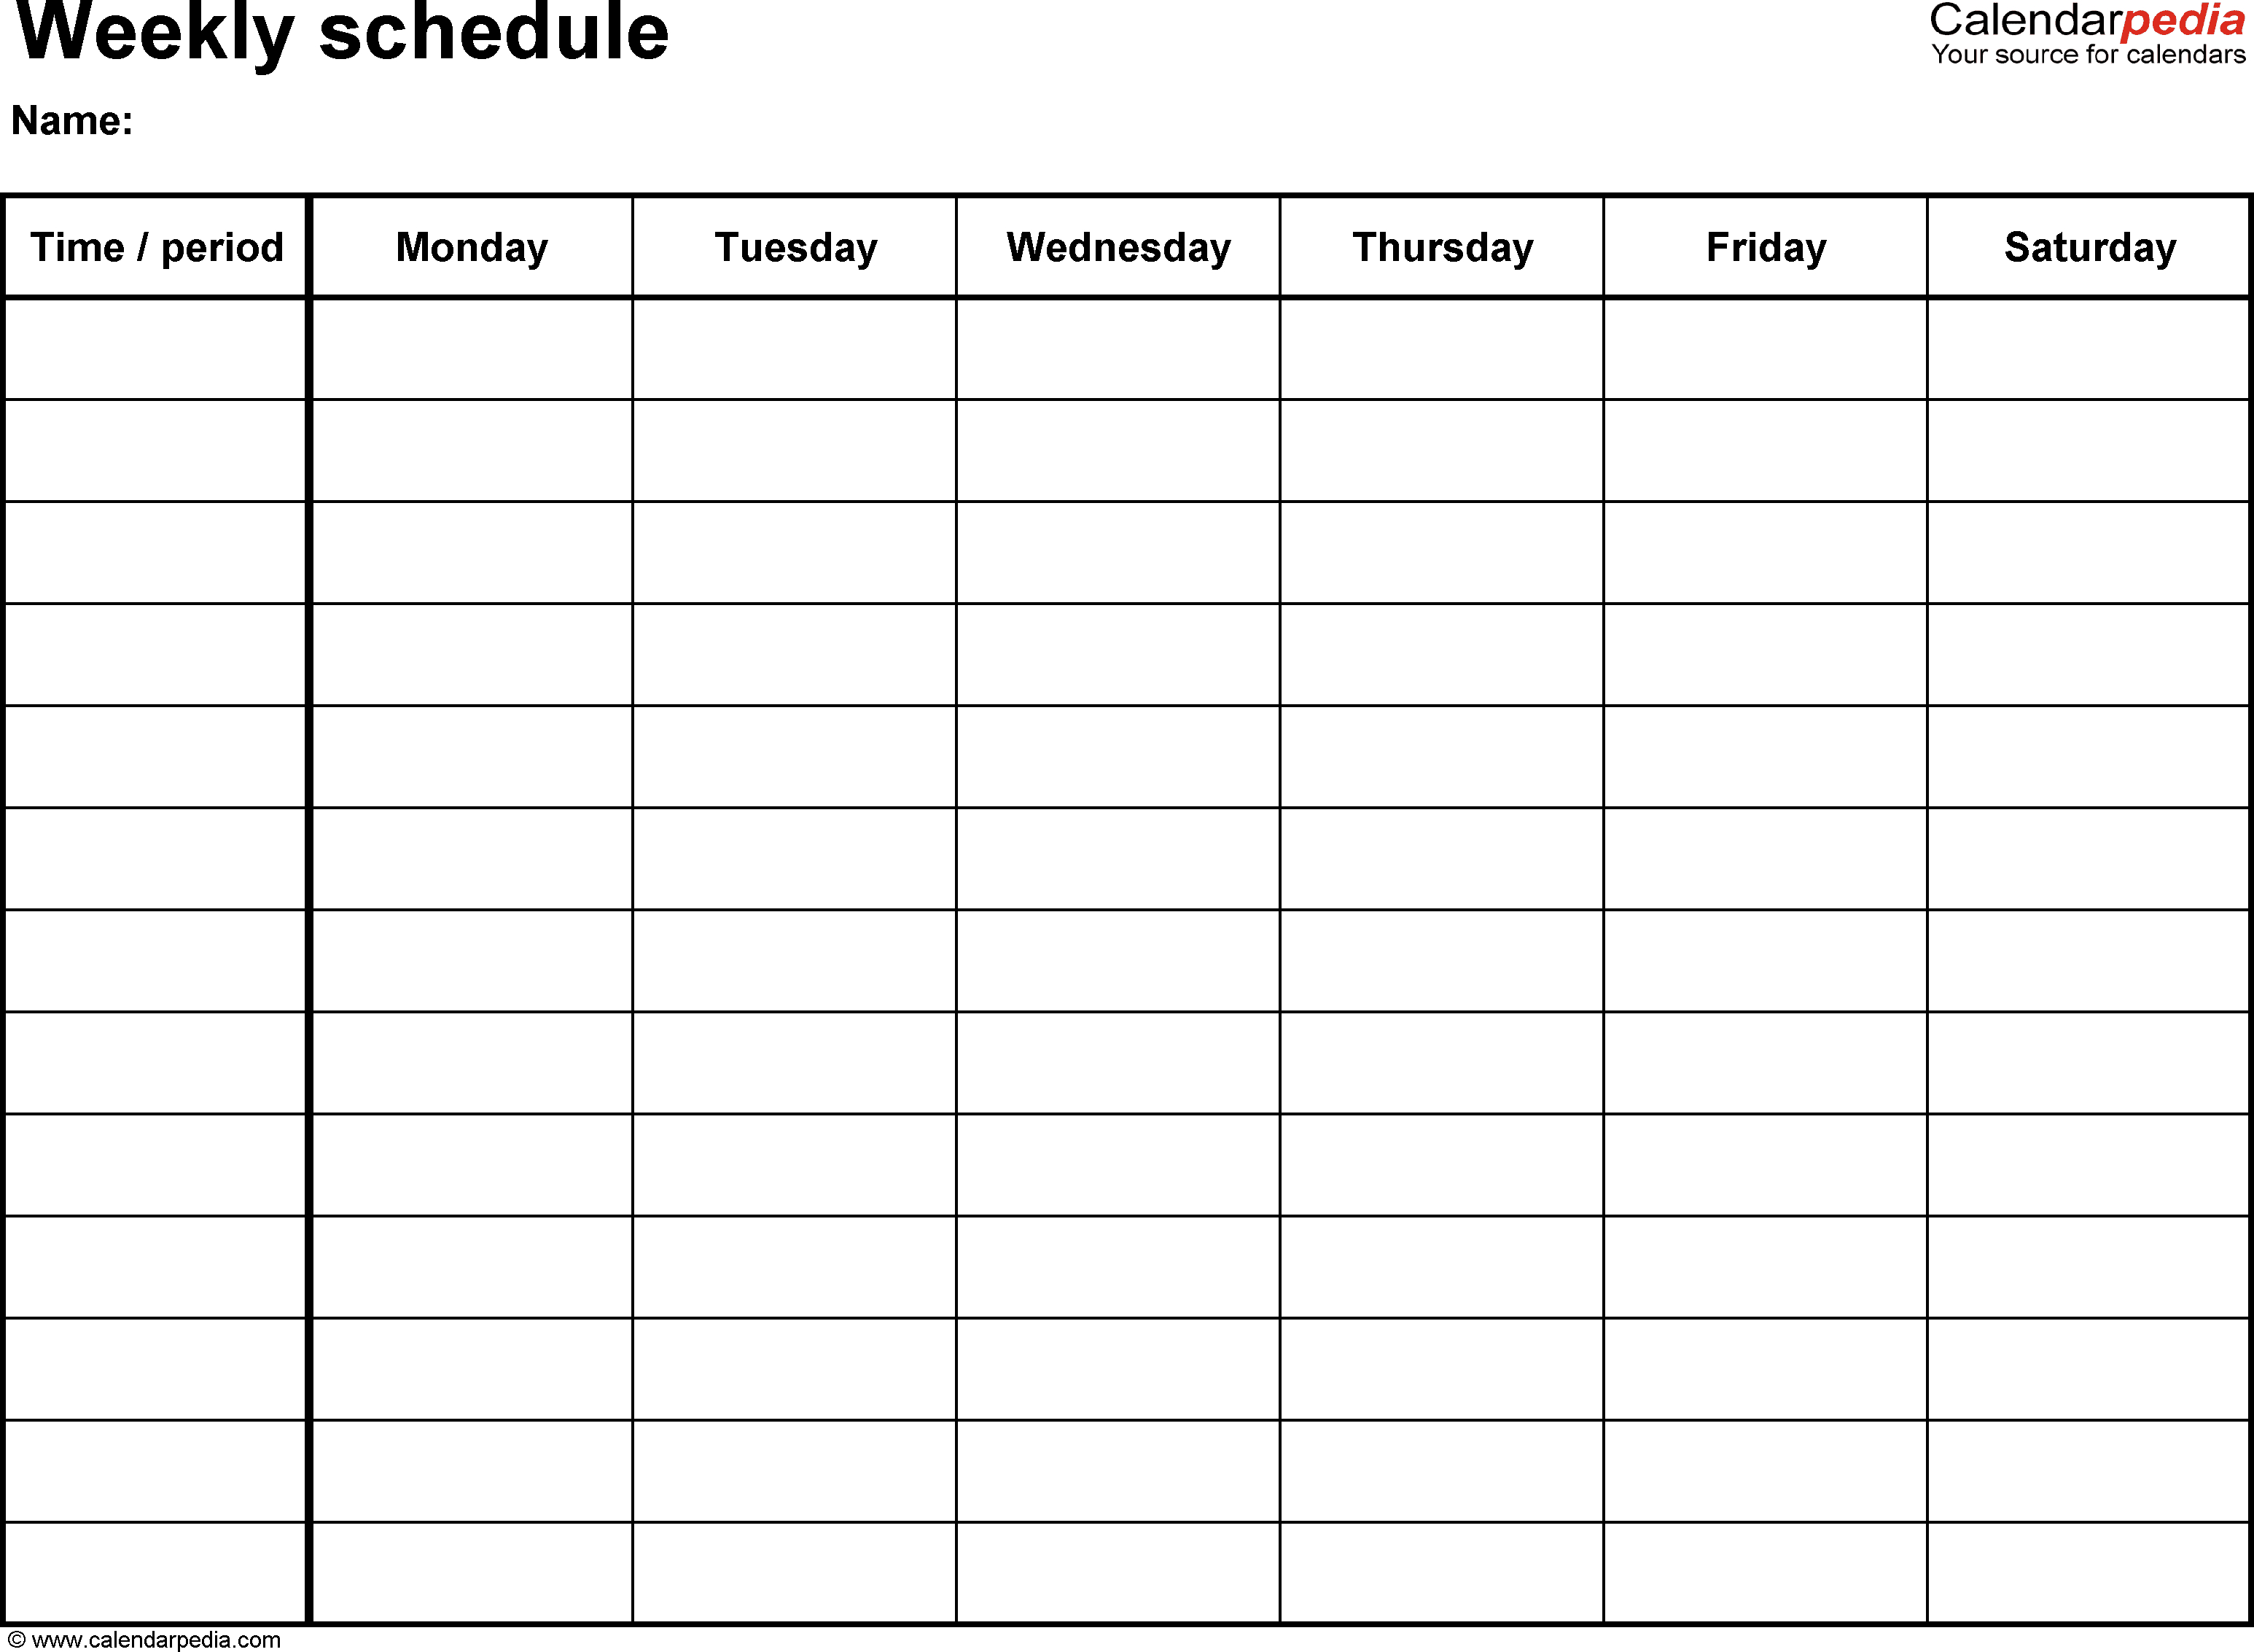 Free Weekly Schedule Templates For Pdf - 18 Templates intended for Printable Schedule Template For Pages